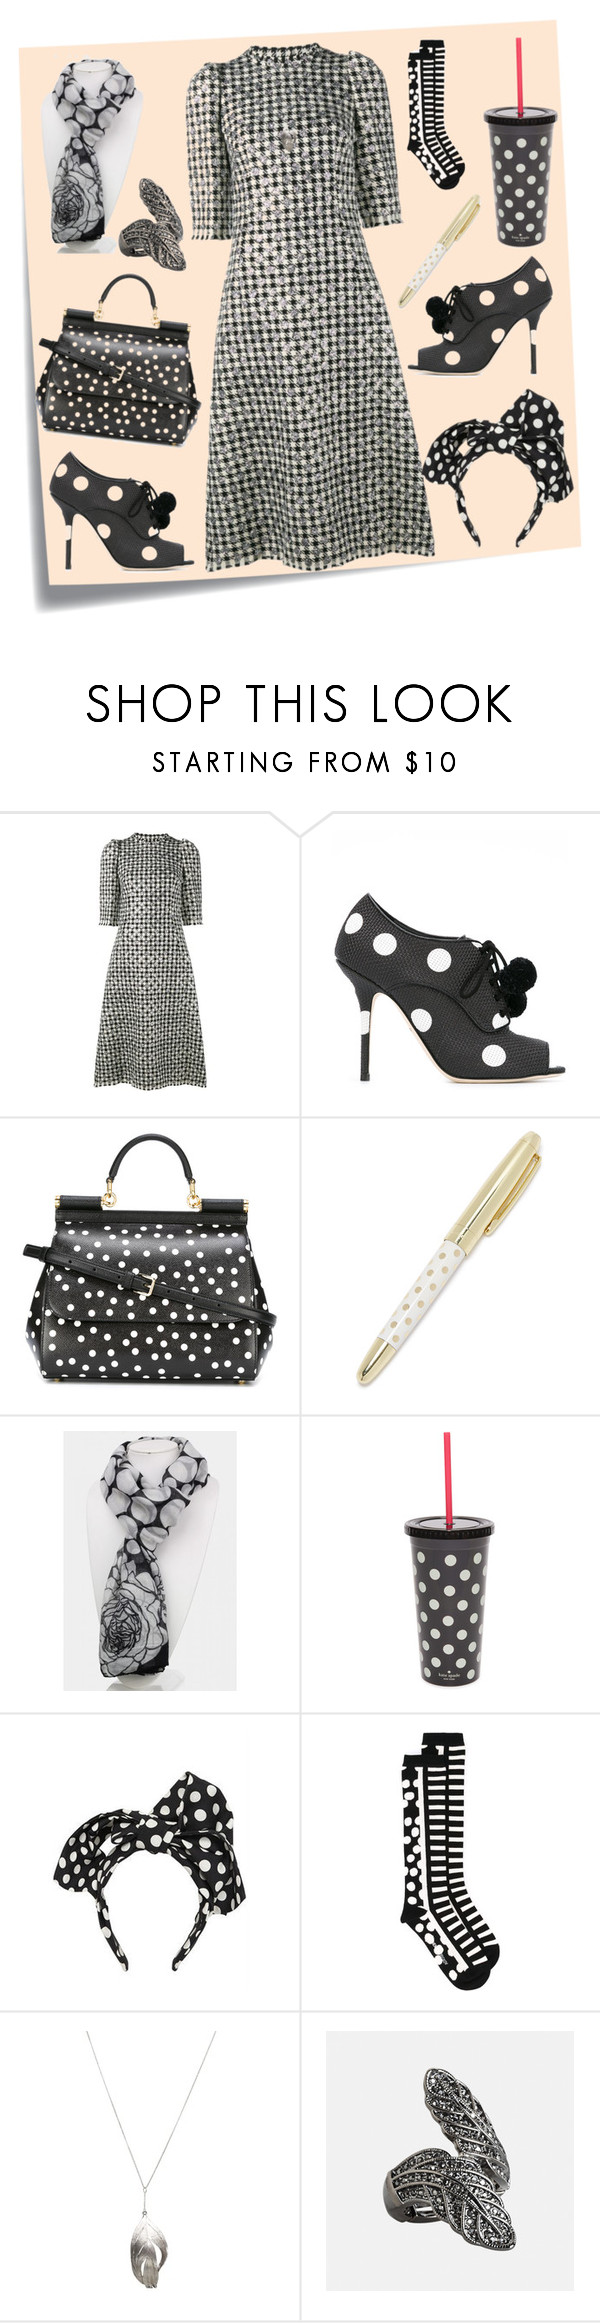 """Polka Dot Dress..**"" by yagna ❤ liked on Polyvore featuring Post-It, Dolce&Gabbana, Kate Spade, Henrik Vibskov, Aurélie Bidermann, Avenue and vintage"